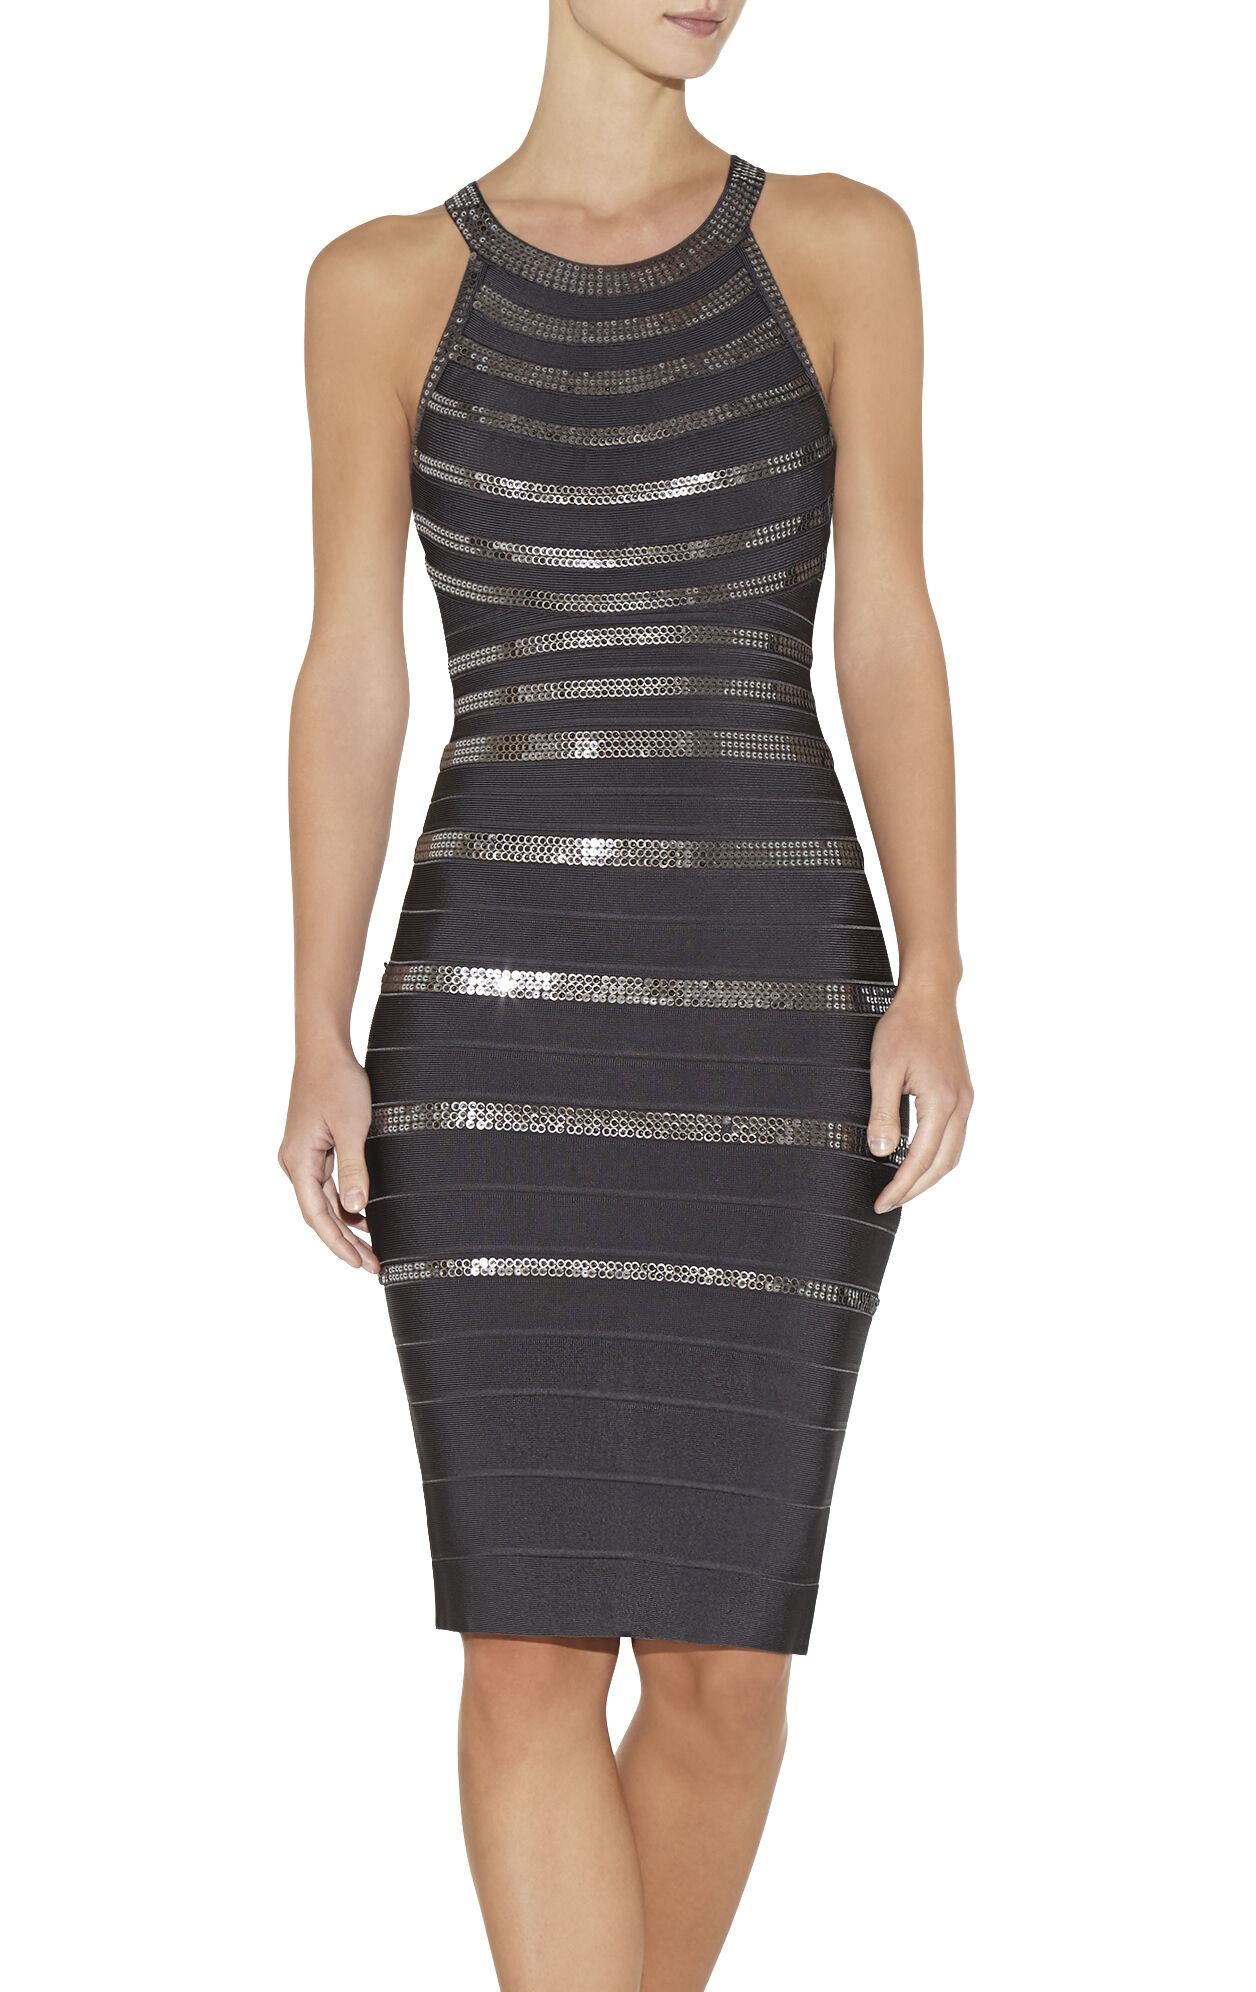 Daga Stacked Leather Sequins Dress